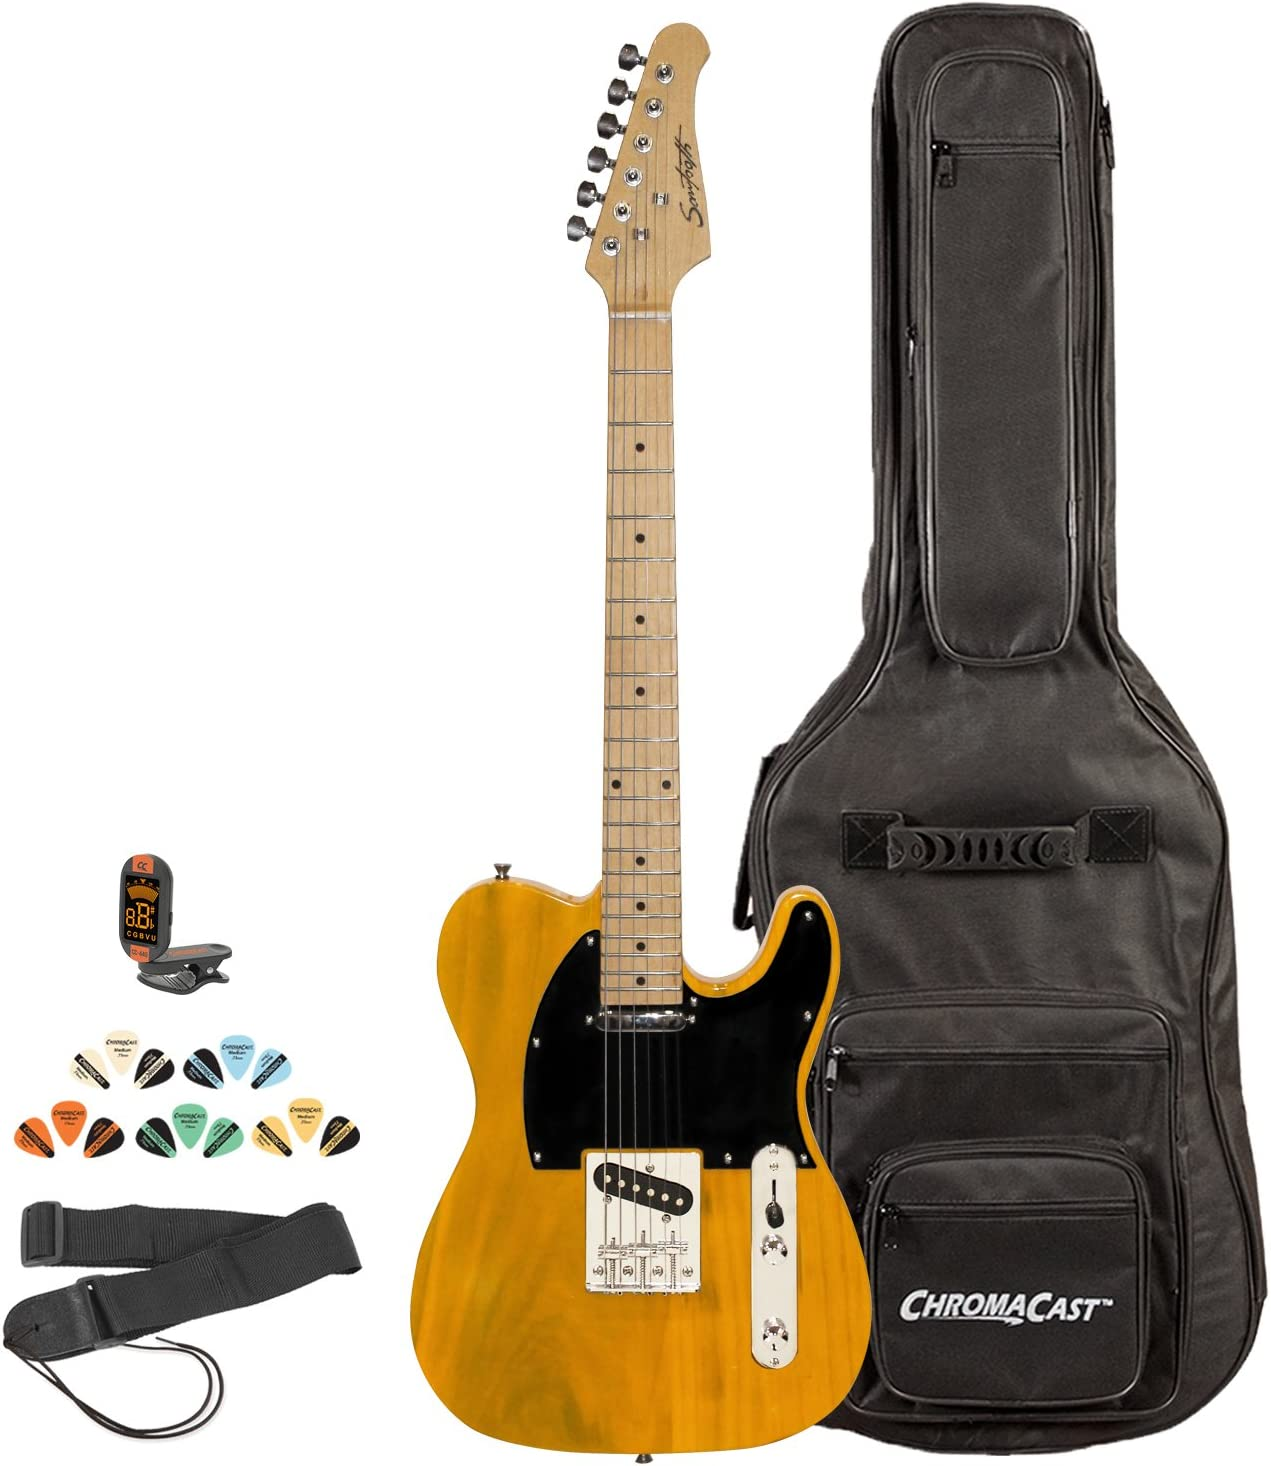 Sawtooth ST-ET-BSB-KIT-2 Electric Guitar free Blac Butterscotch with Branded goods